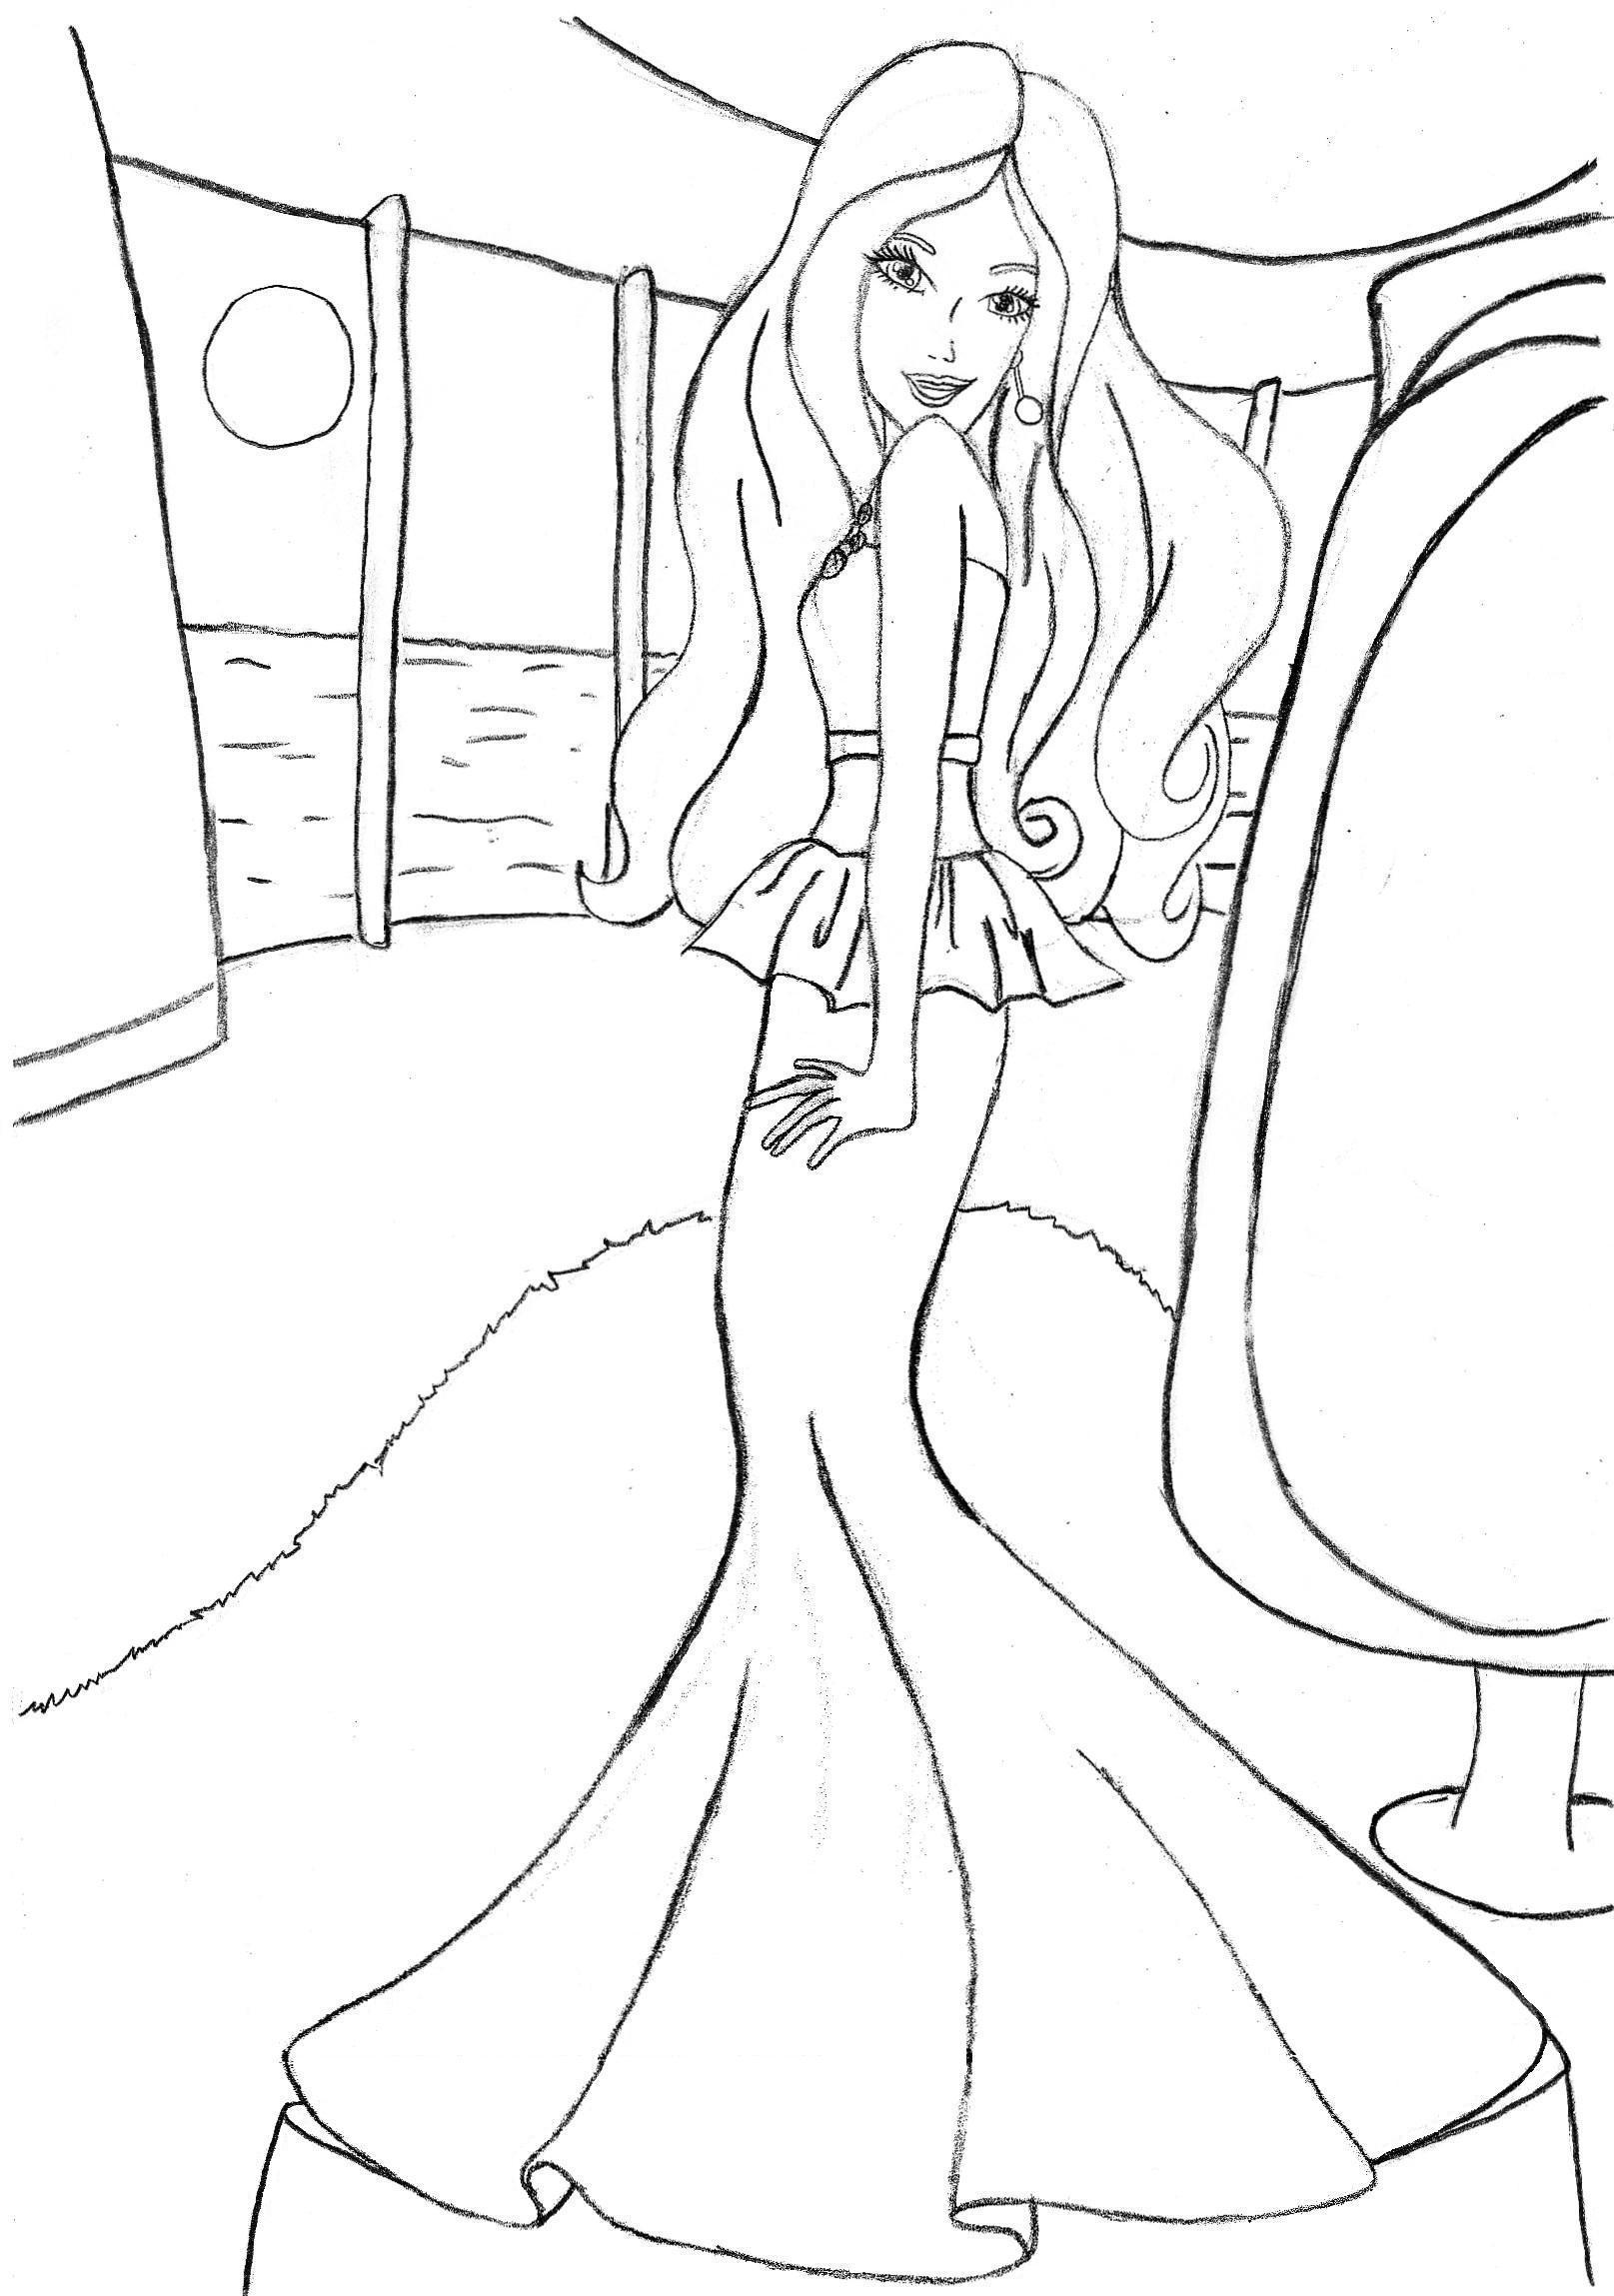 coloring pages online free printable barbie coloring pages fresh in painting free coloring kidsjpg - Coloring Pages Online For Free